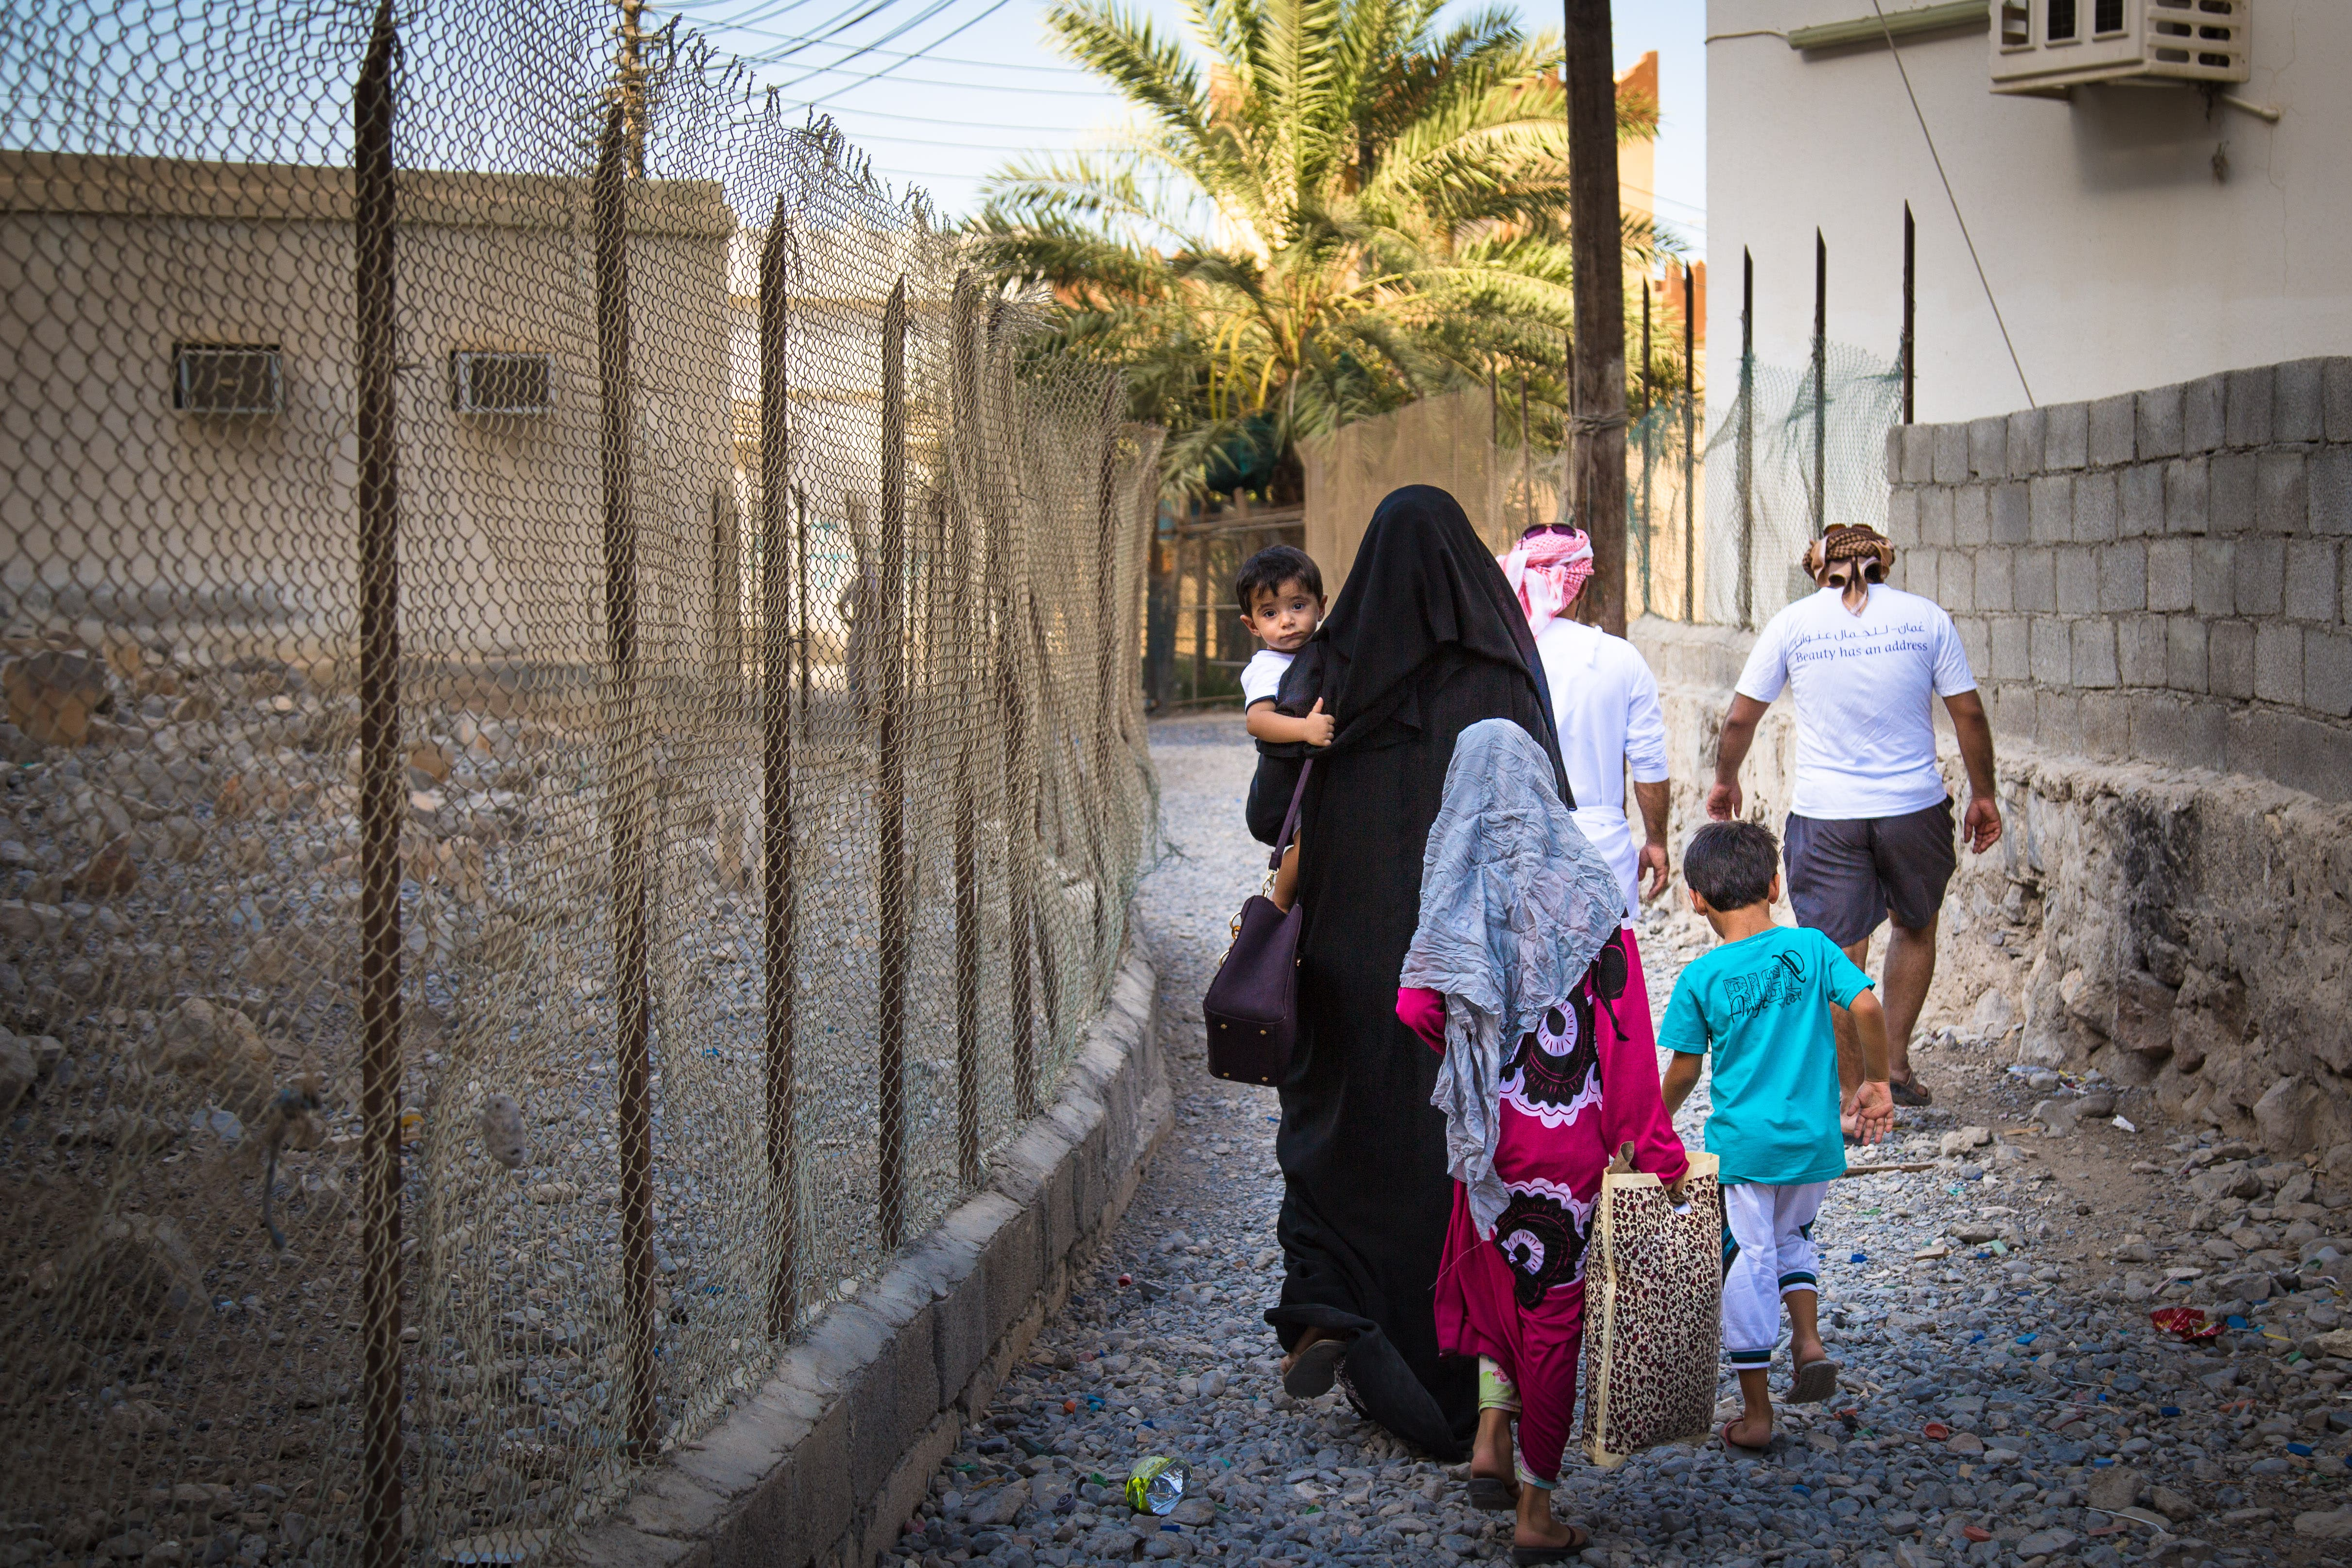 Prayer time - a rare group of Kumzaris left in the village on their way to mosque. (Amanda Fisher/Al Arabiya News)